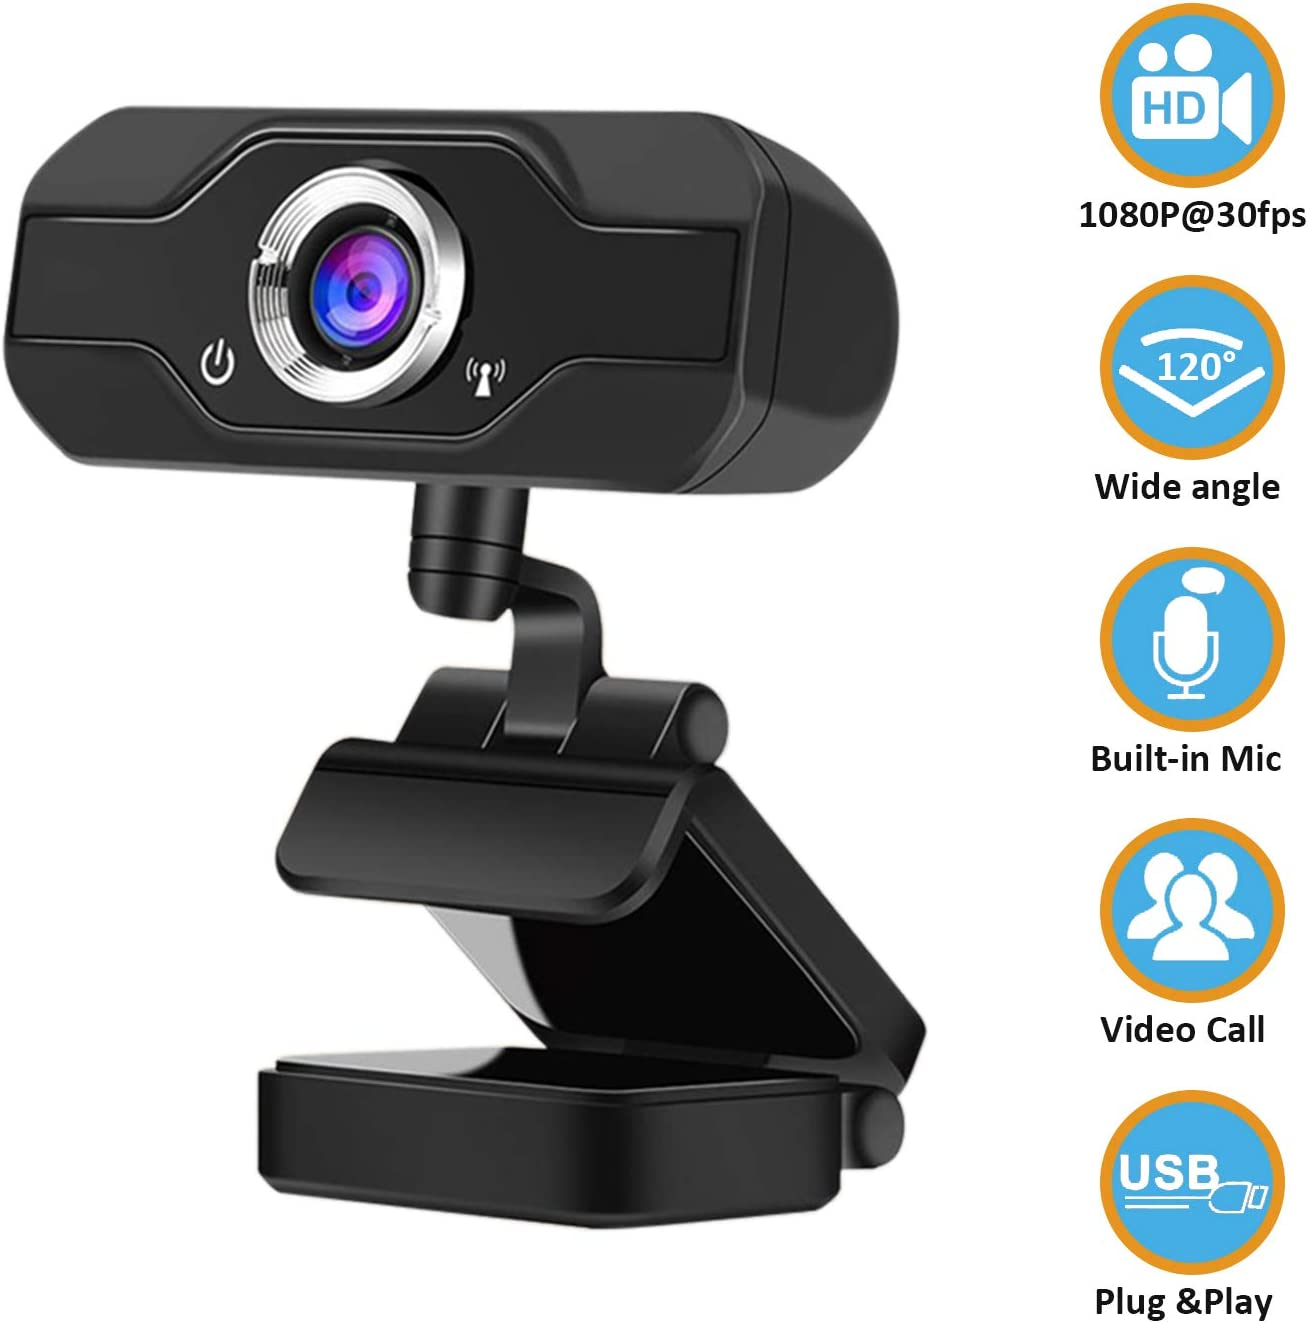 1080P Webcam with Microphone, Full HD Web Camera for Computers with 120-Degree Widescreen, Adjustable Focus, Live Streaming Computer Web Camera with USB PC Webcam Video Calling Recording Conferencing